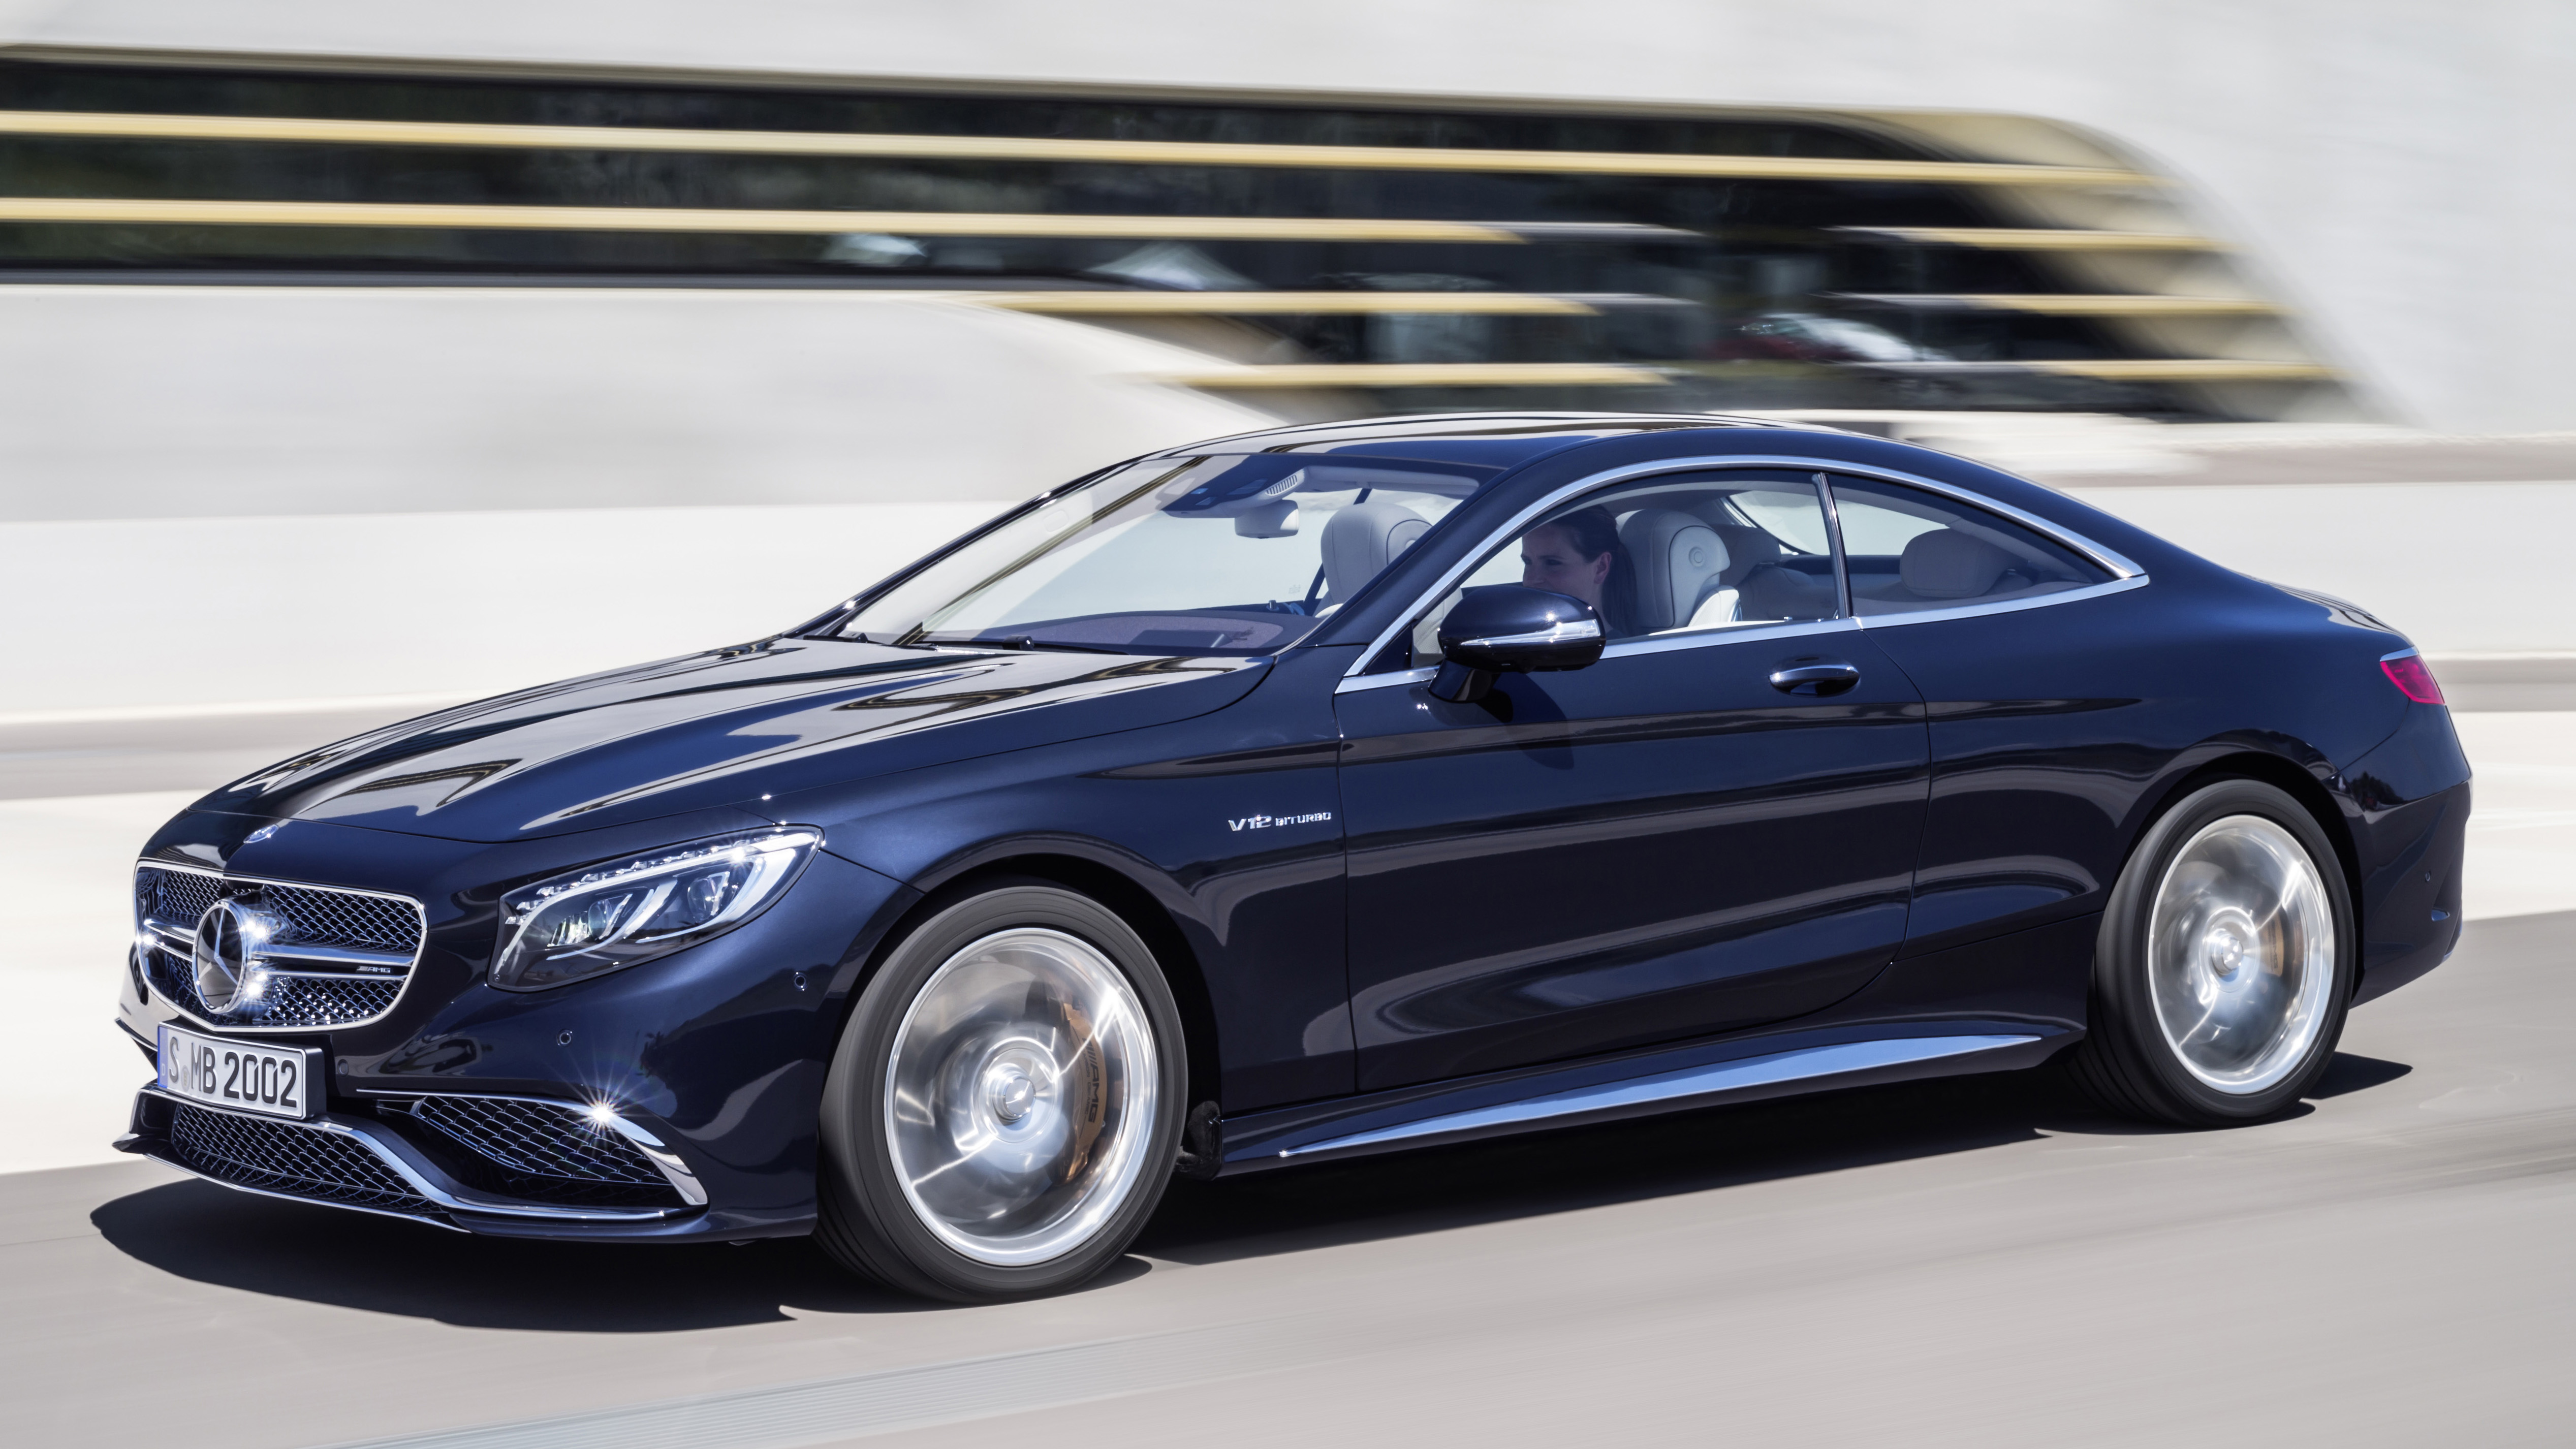 Mercedes-Benz S 65 AMG Coupe storms the gates with 630 PS, 1,000 Nm of V12 twist Image 258906